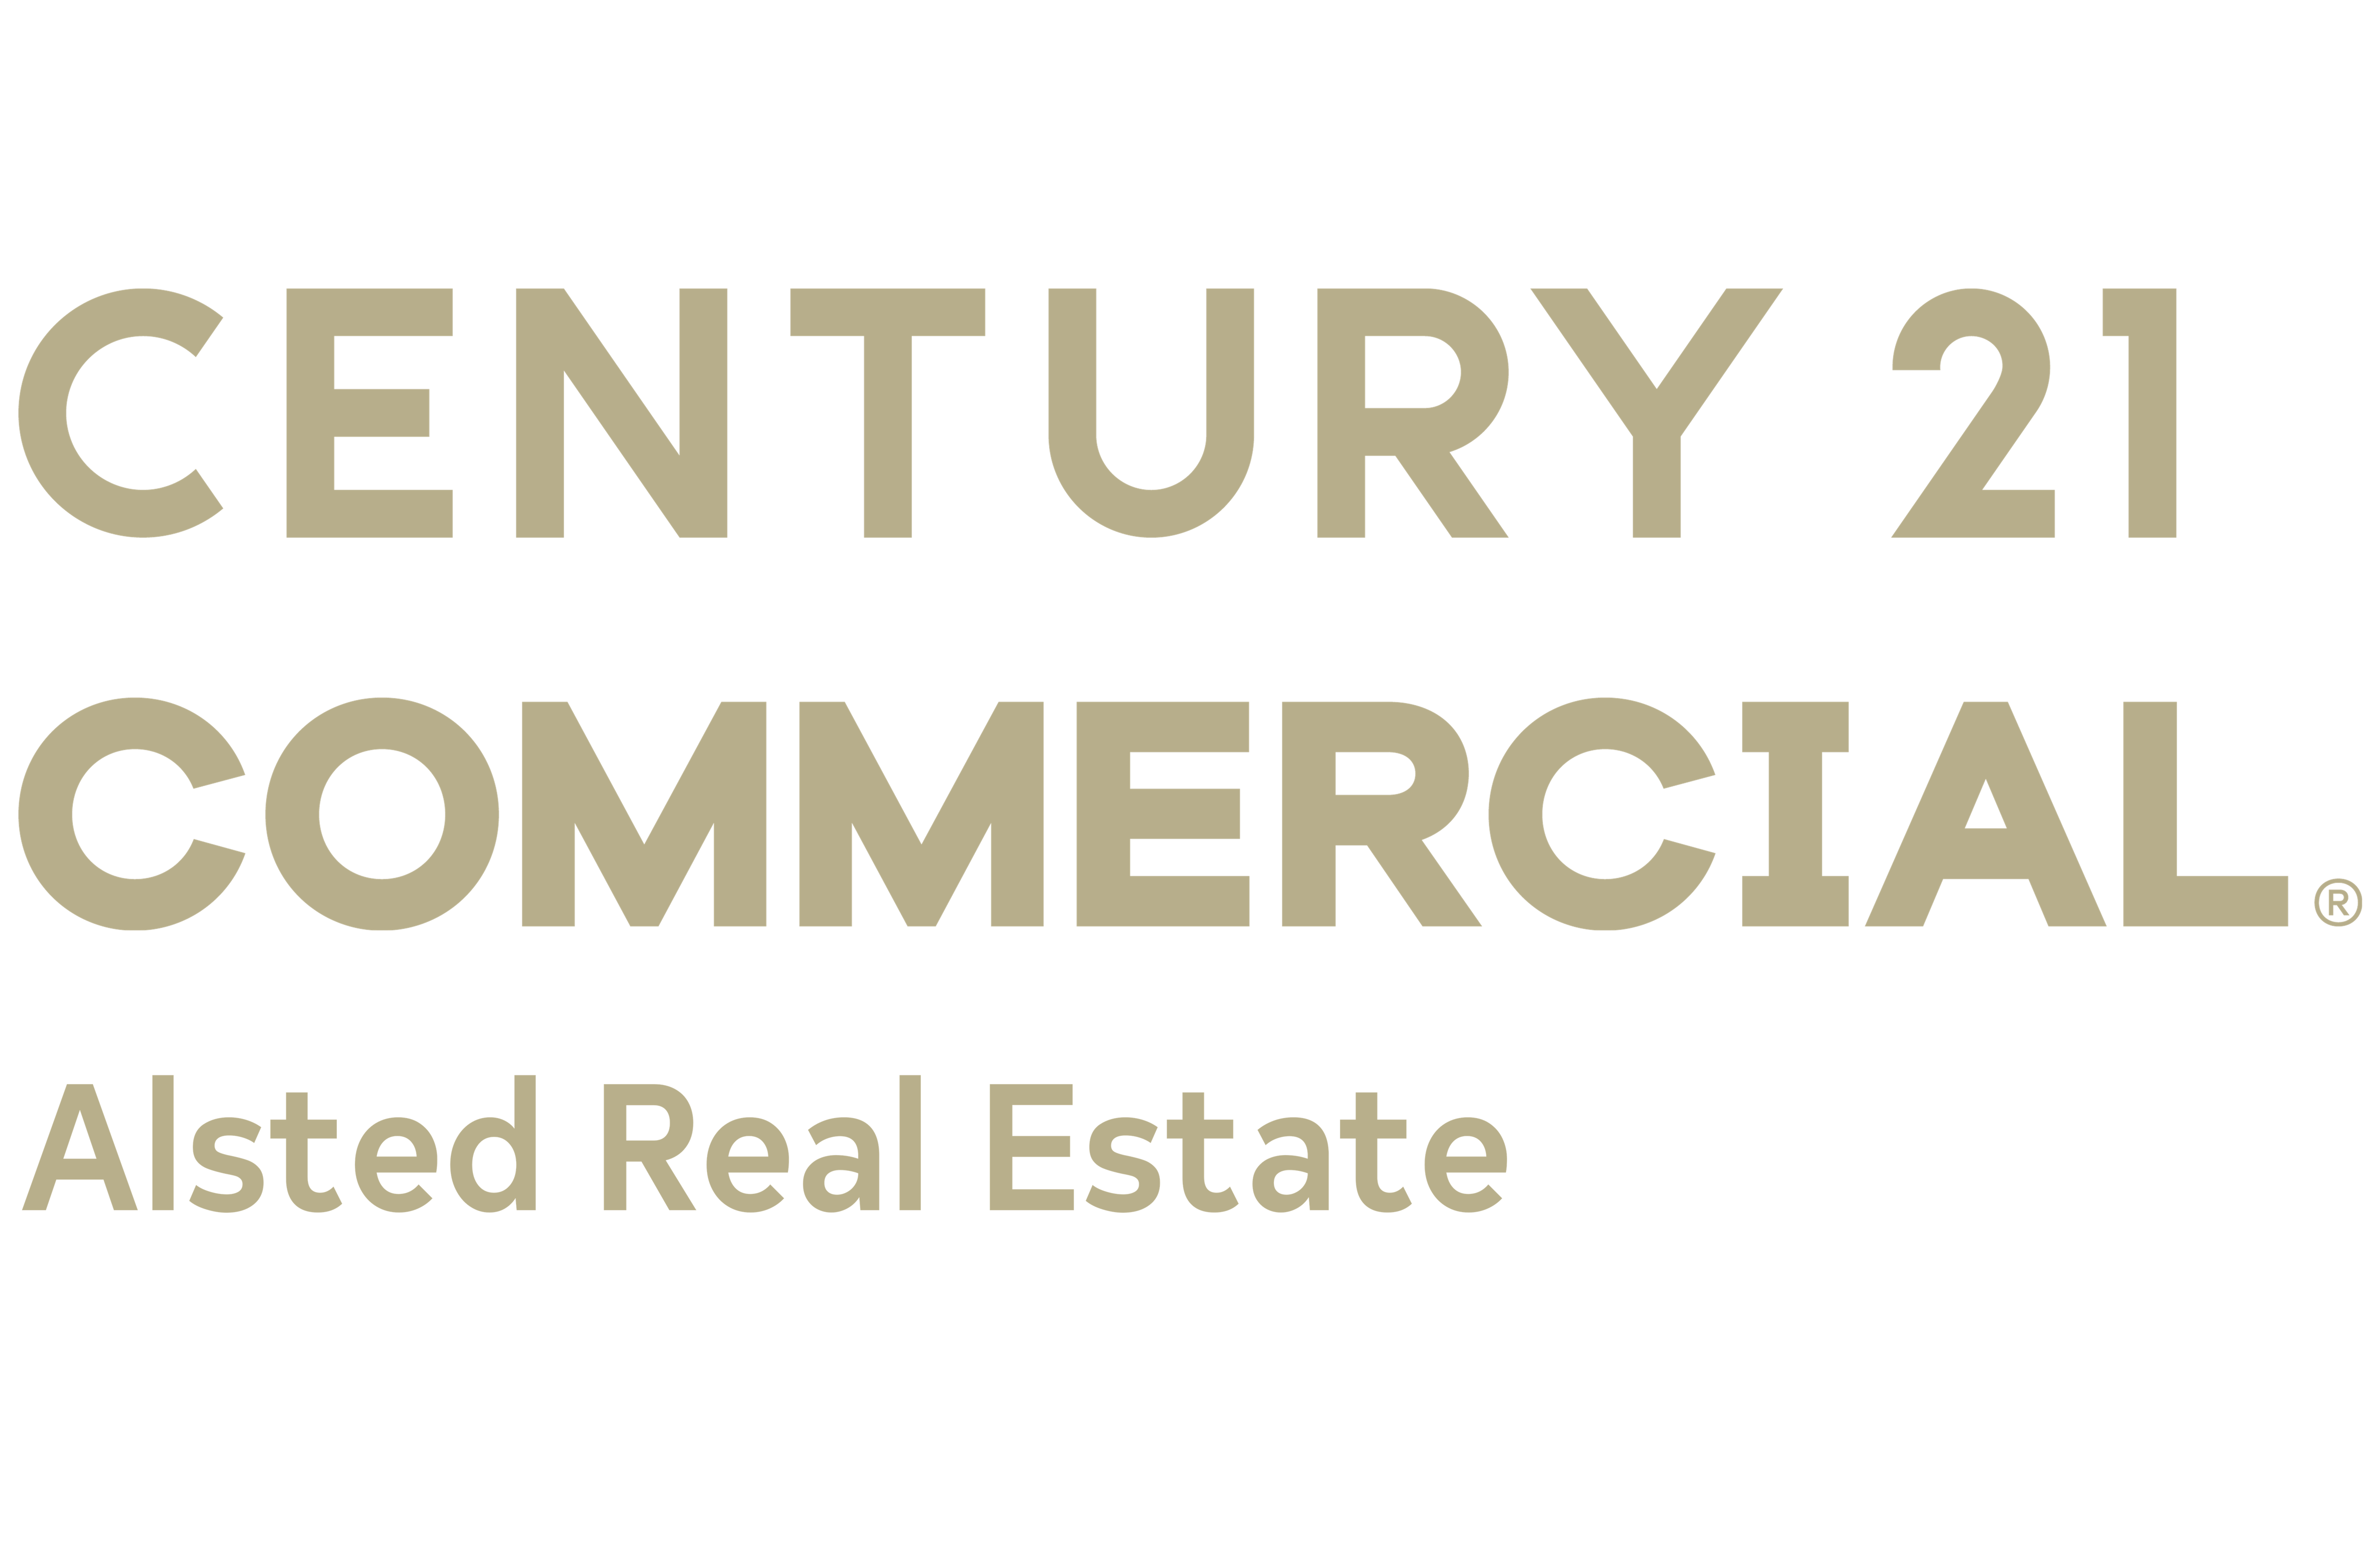 The Fanning Realtors of CENTURY 21 Alsted Real Estate logo